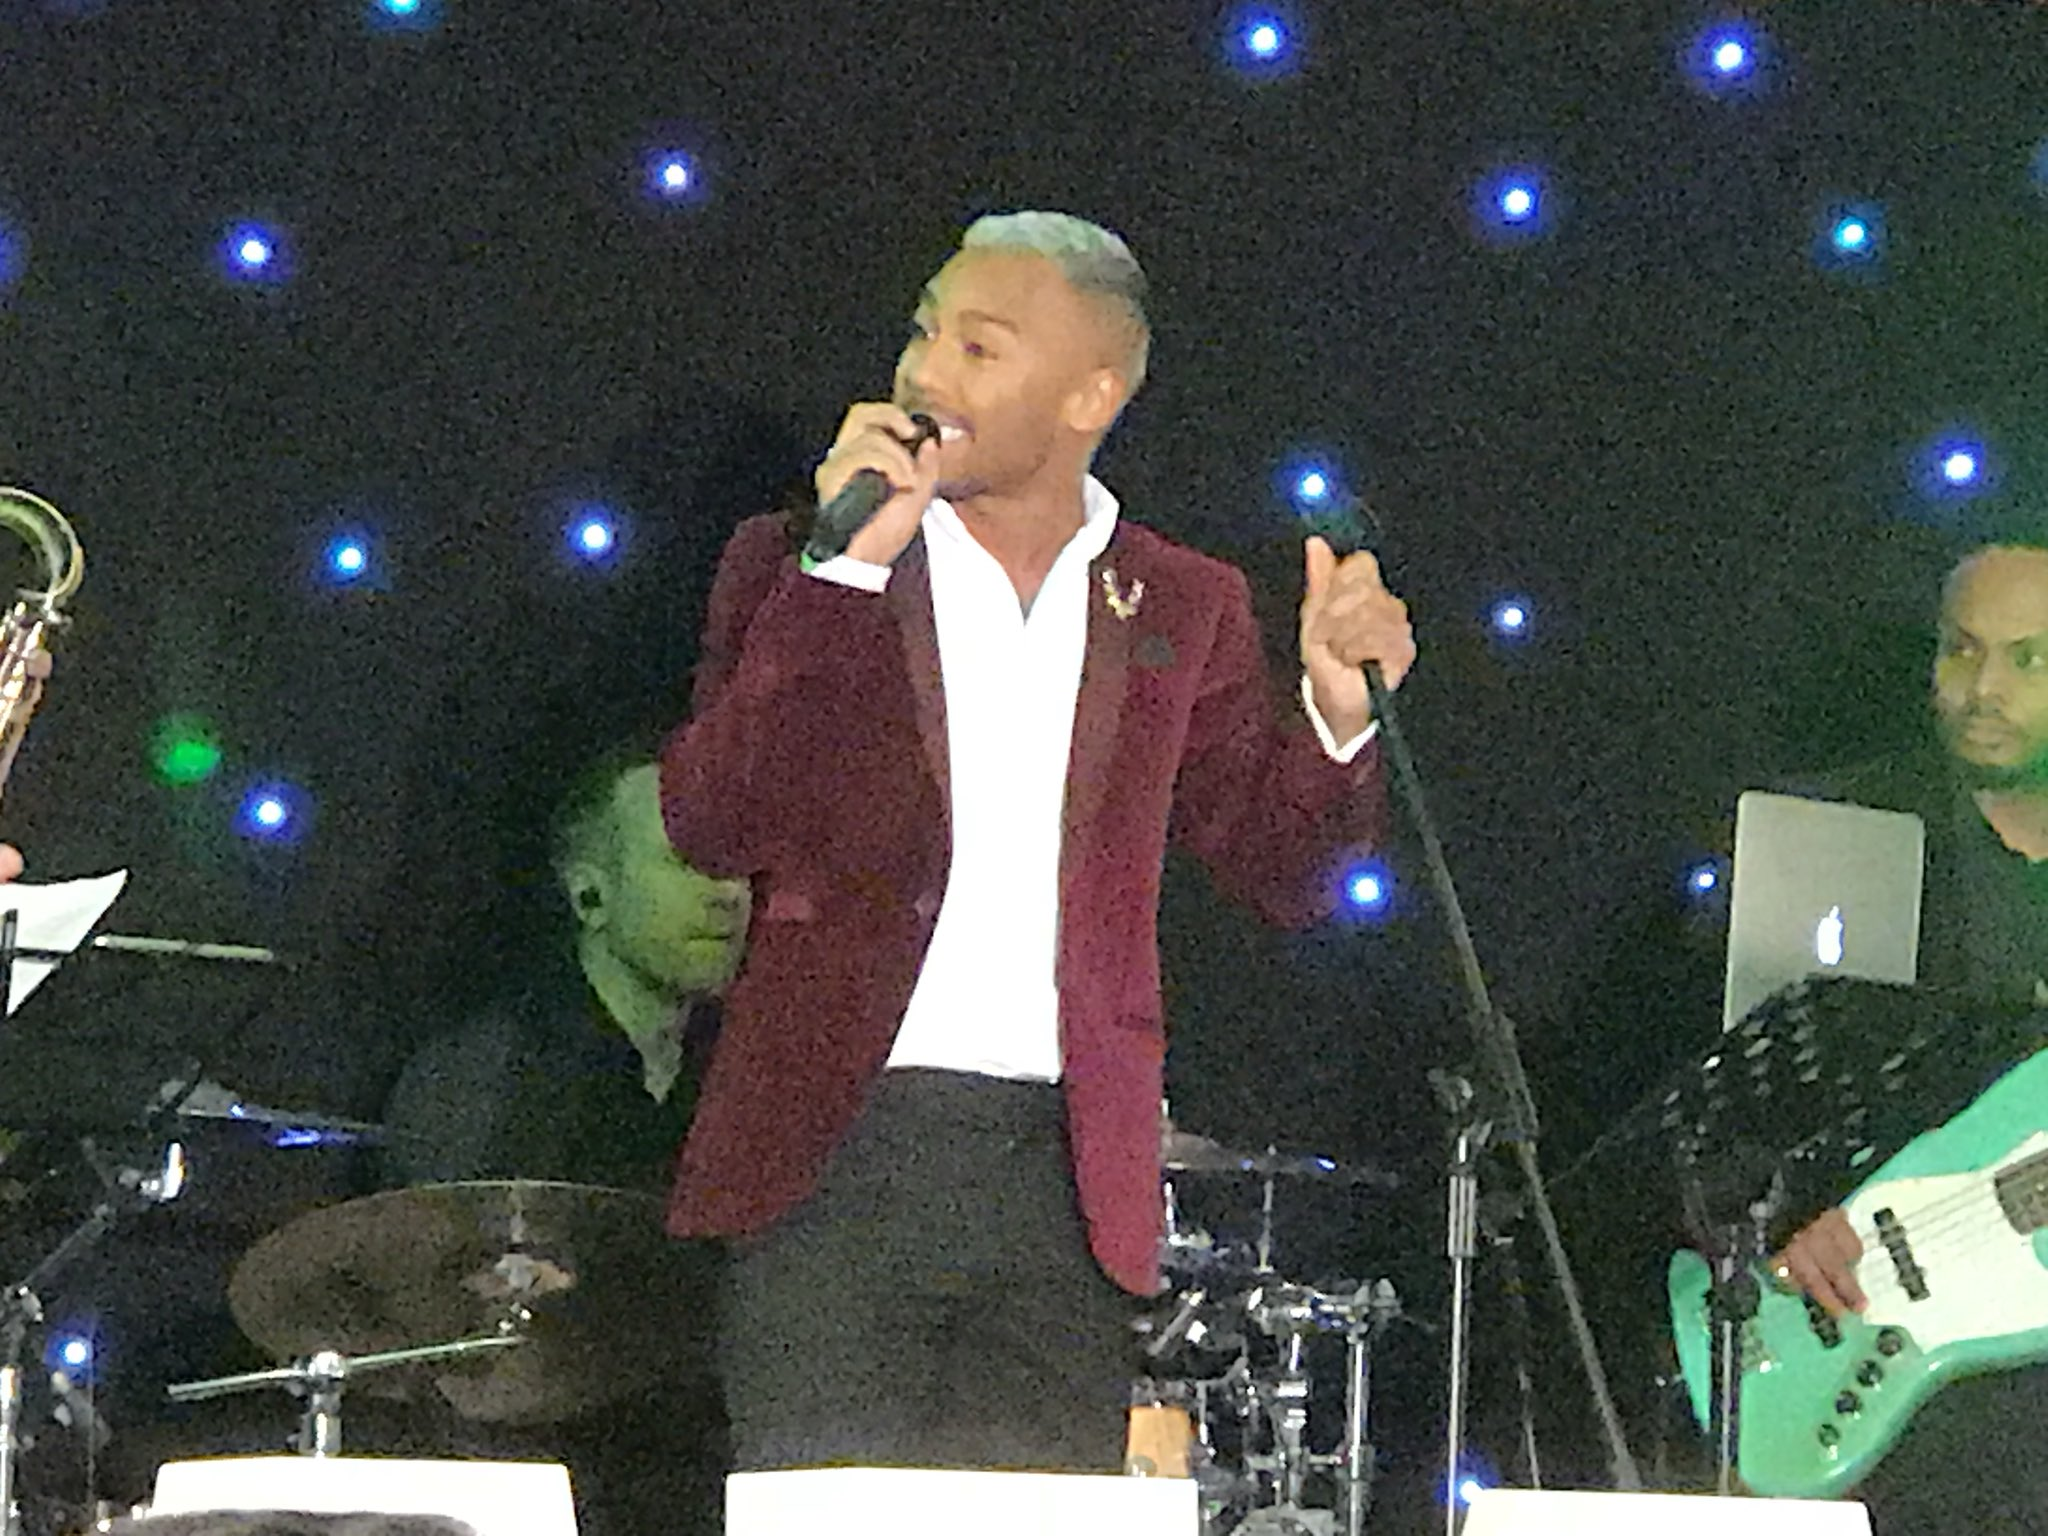 RT @CDC_Events: @MarcuscollinsUK rocking the @WattUtilities #ChristmasParty https://t.co/TiZ9wwwPbY